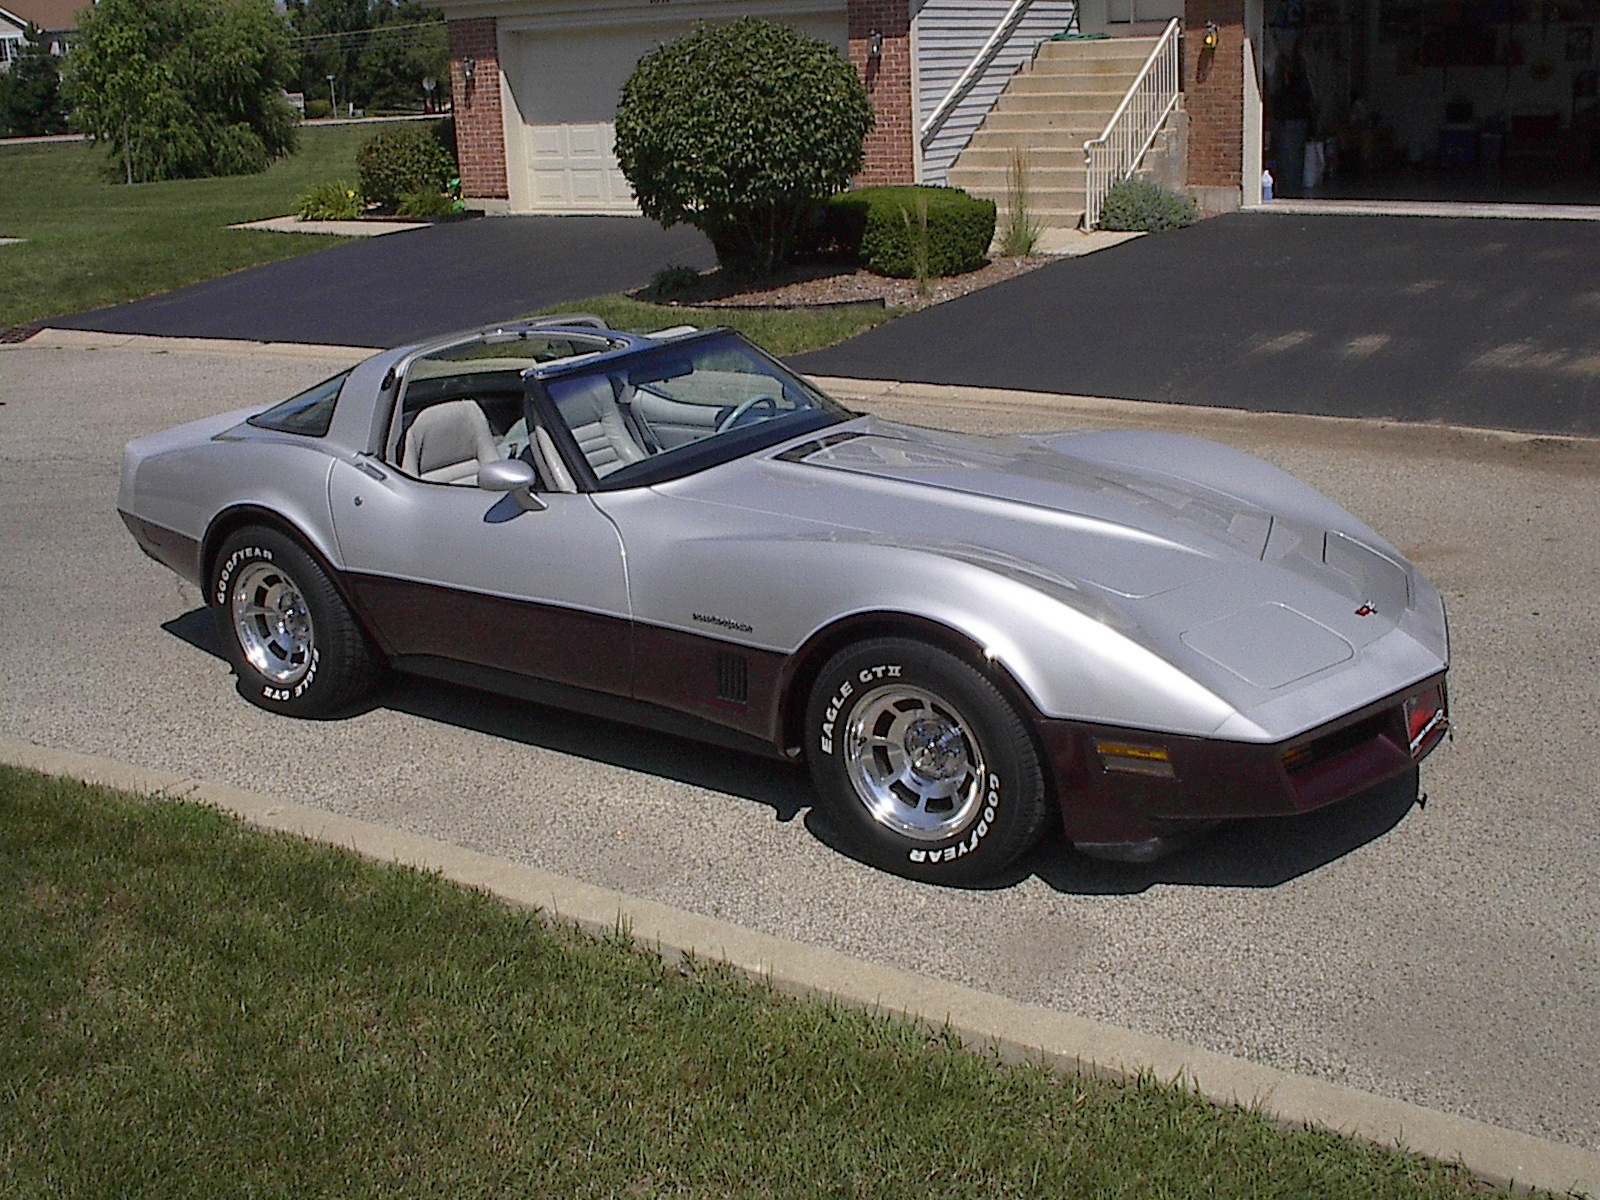 1982 Chevrolet Corvette Coupe, 1982 Chevrolet Corvette Base picture, exterior